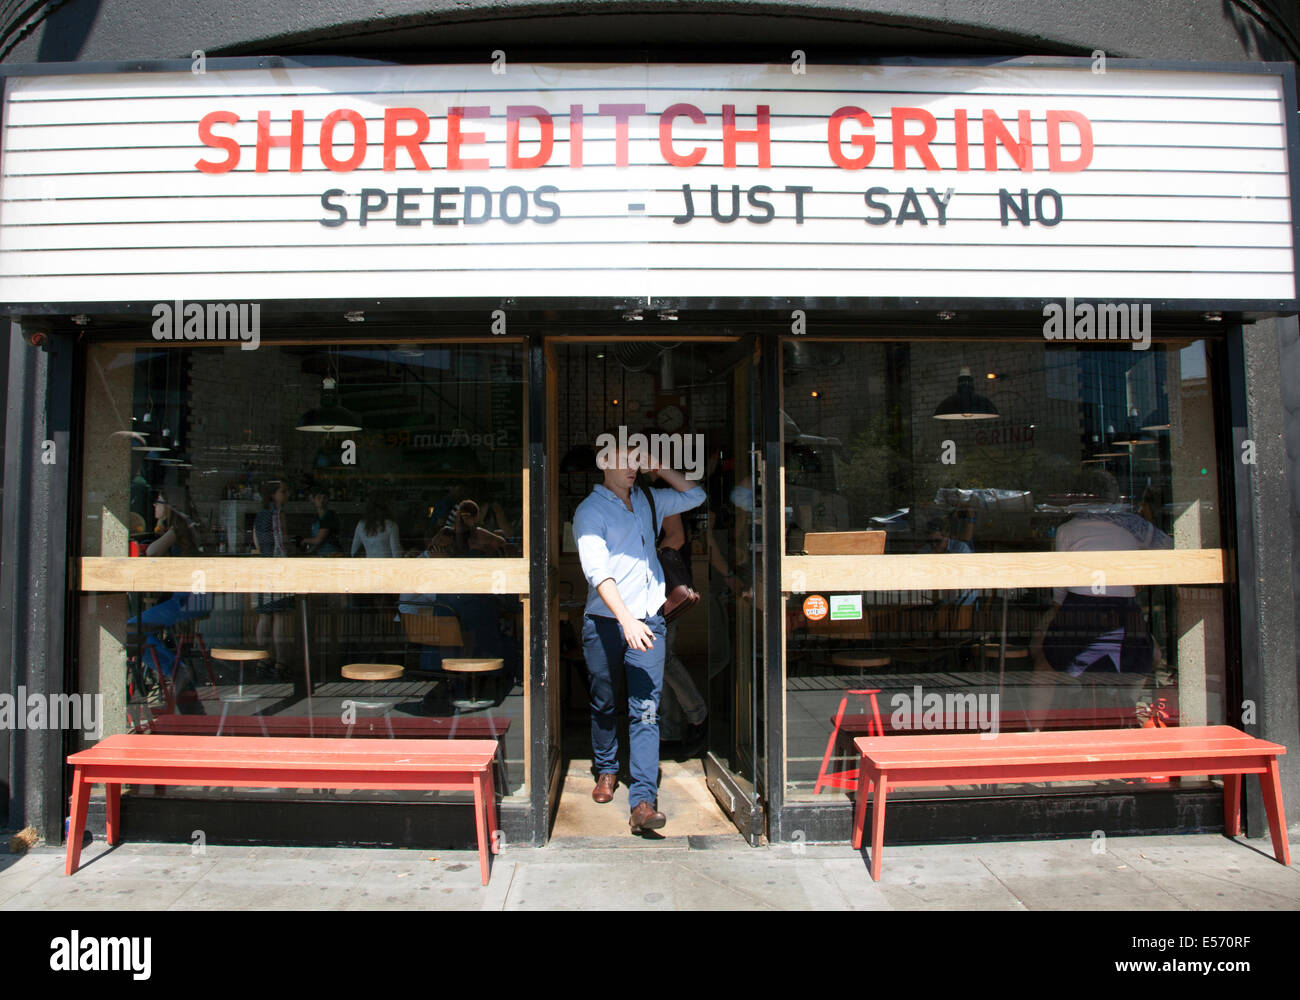 Shoreditch Grind coffee bar, Old Street, Londres Photo Stock